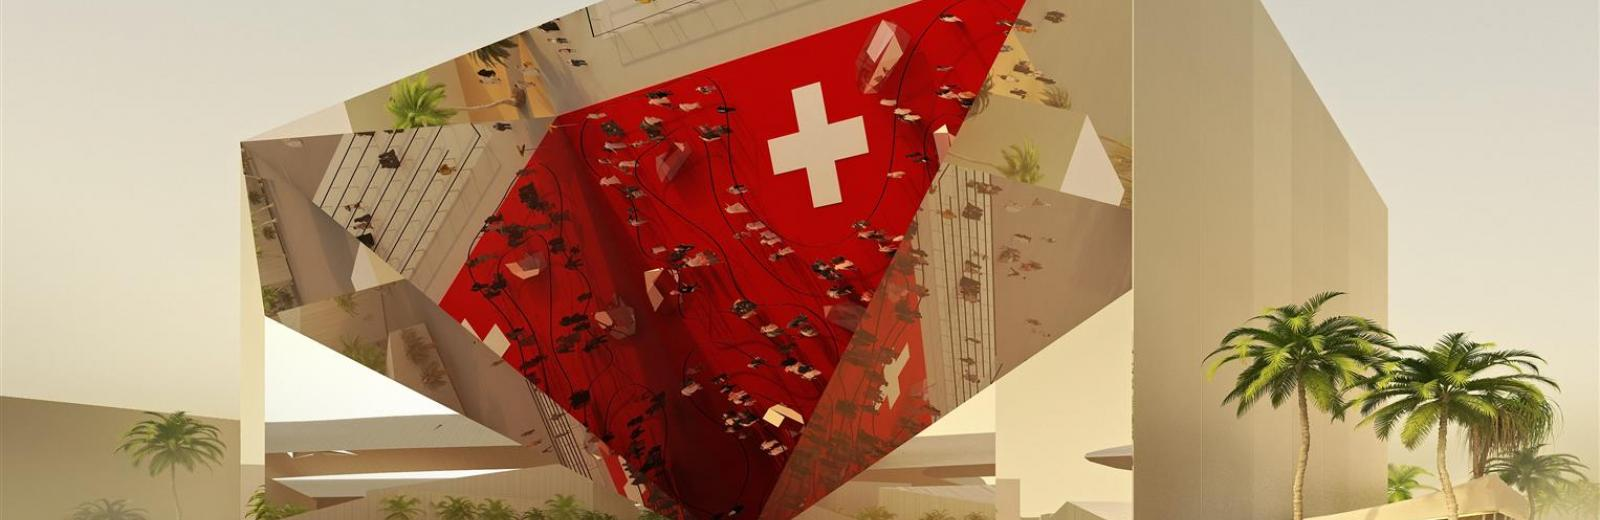 Swiss Pavilion at Expo 2020 Dubai